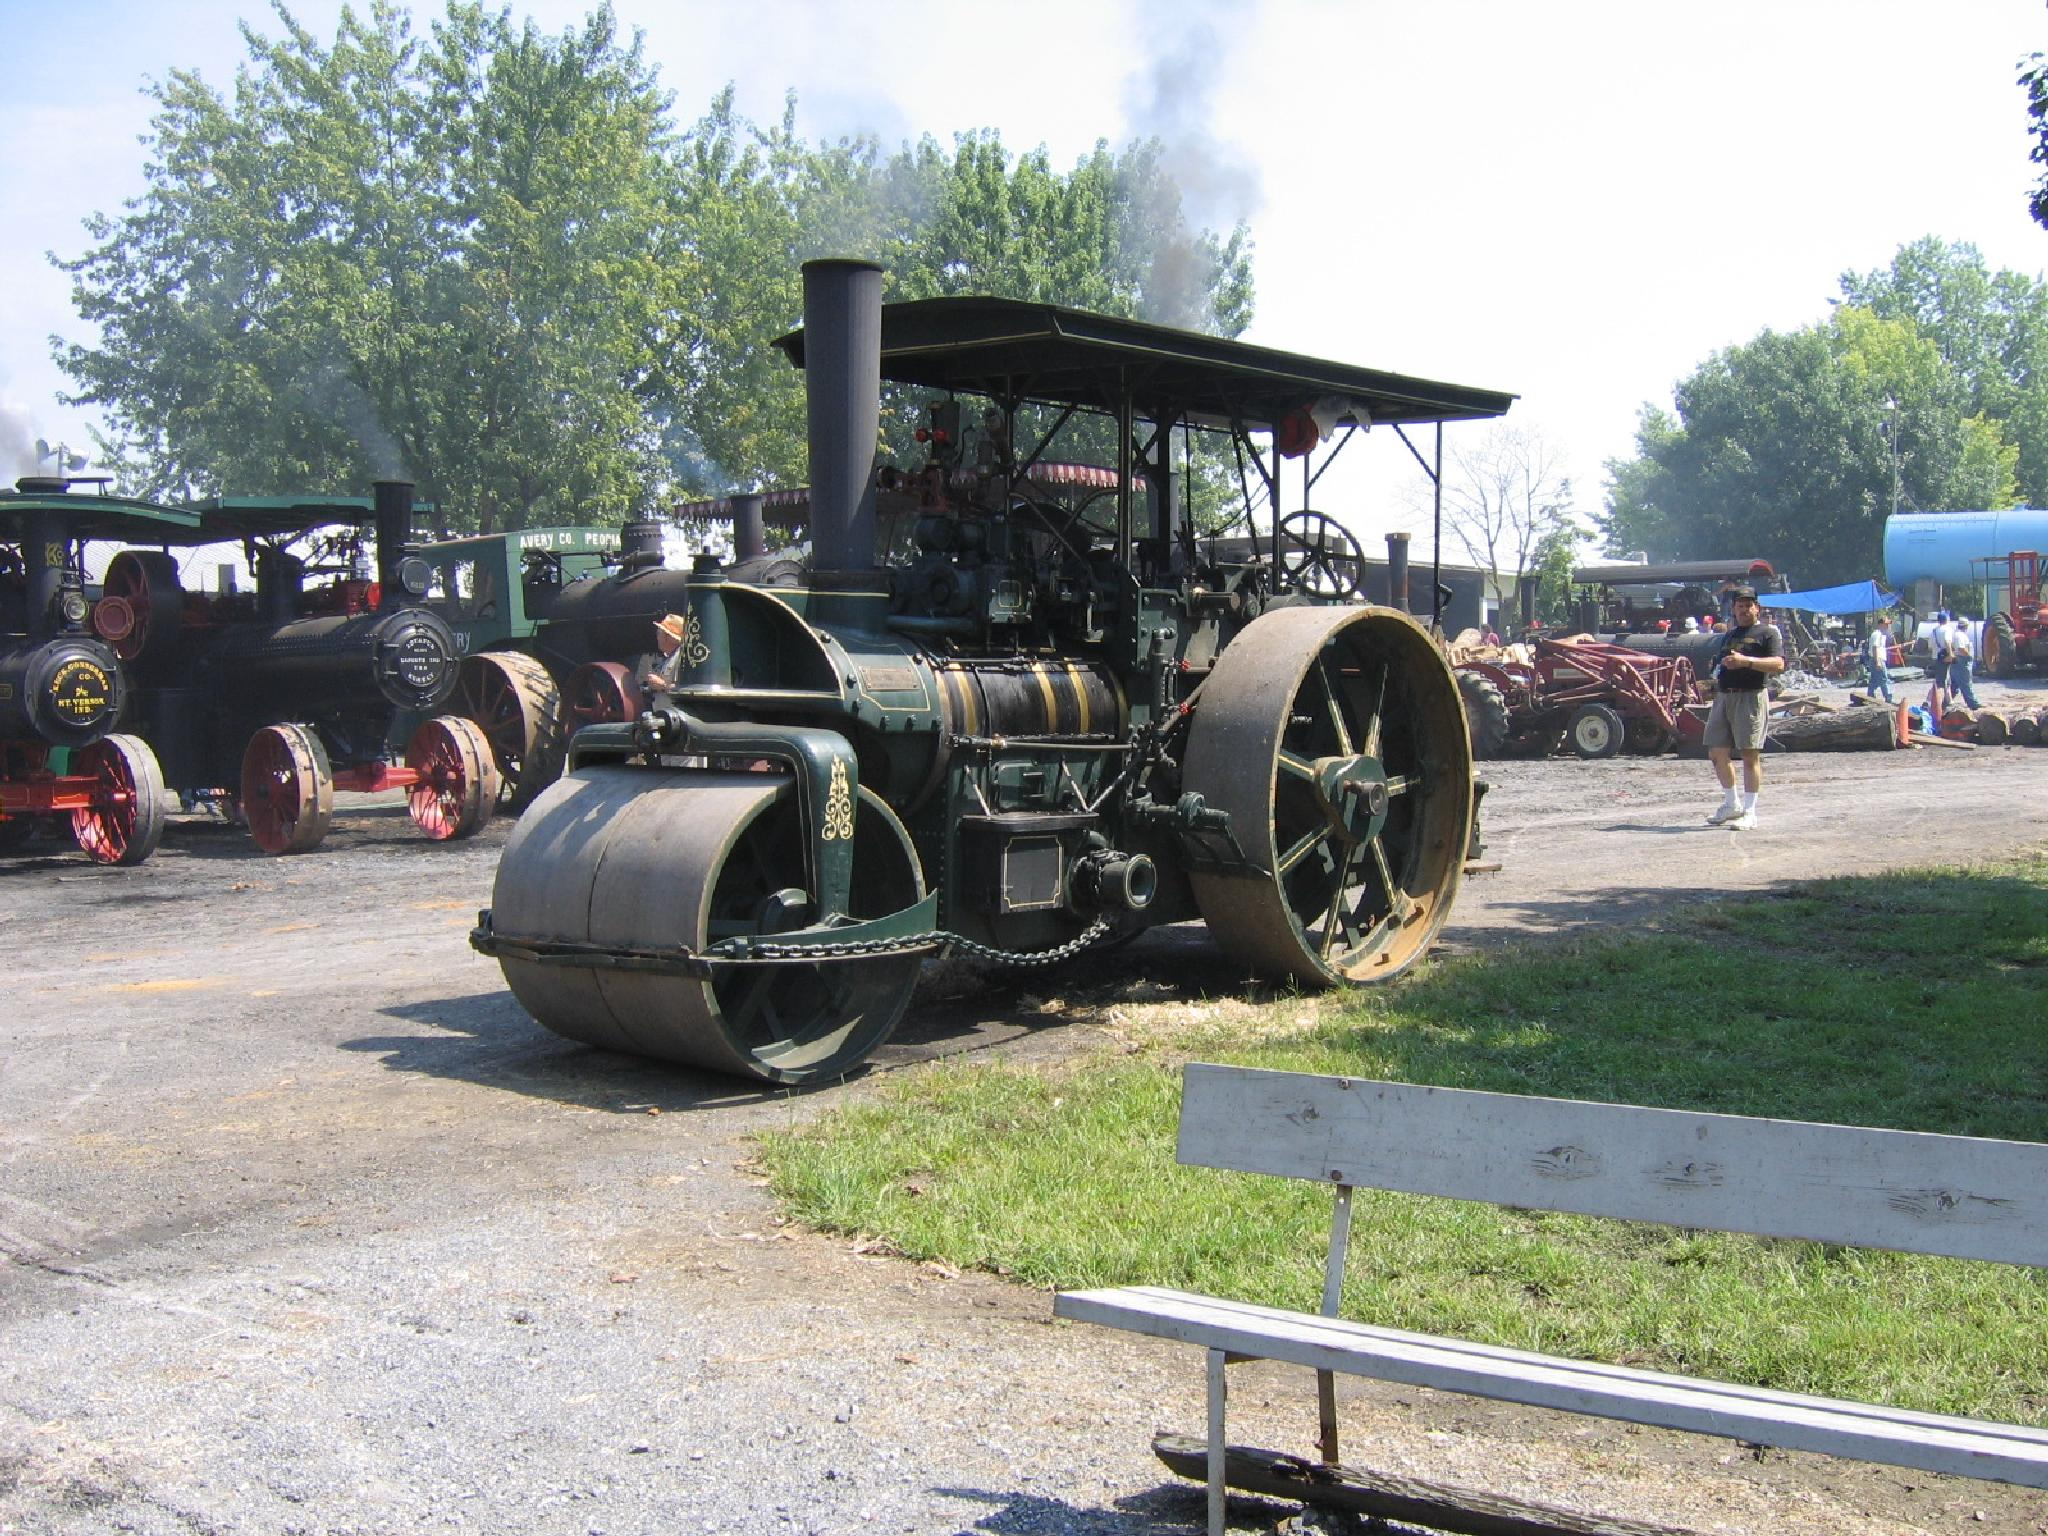 Rough & Tumble,Steam Roller   by janet.fisher.503